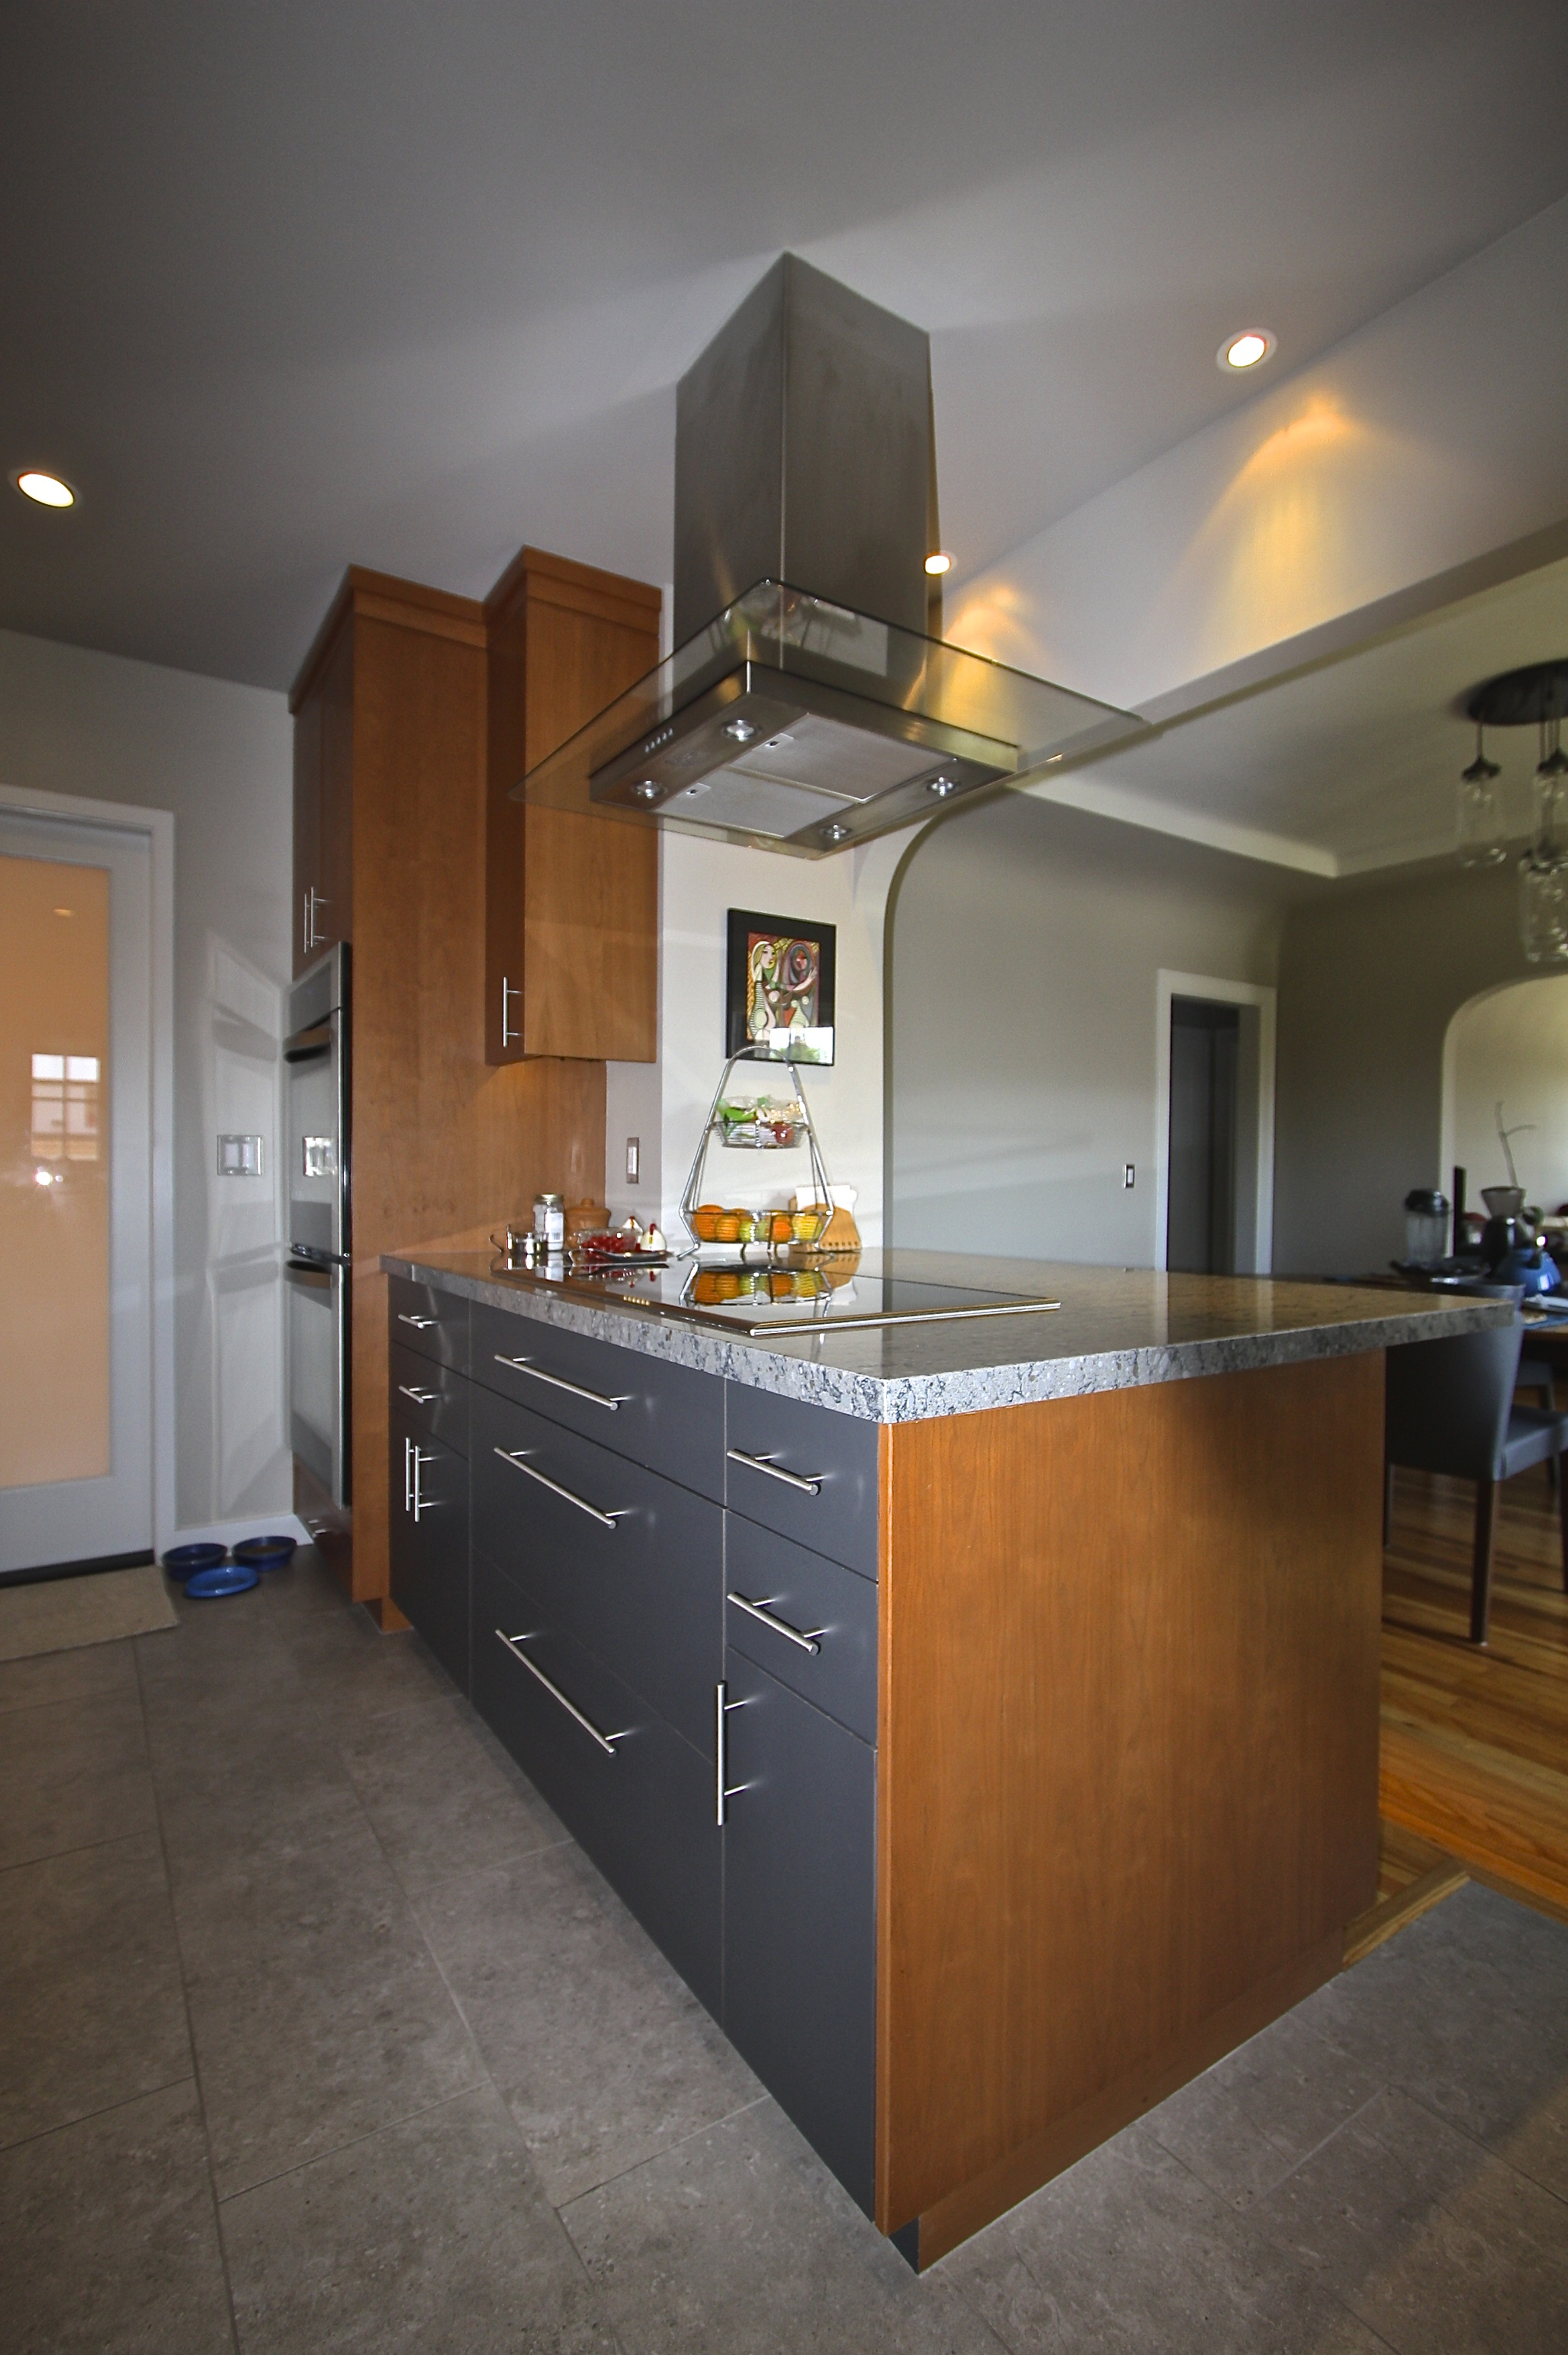 A nice mix of wood veneer and laminate cabinets create interest and balance the warm wood colors with cooler grays and blues of the tile, walls and countertop.